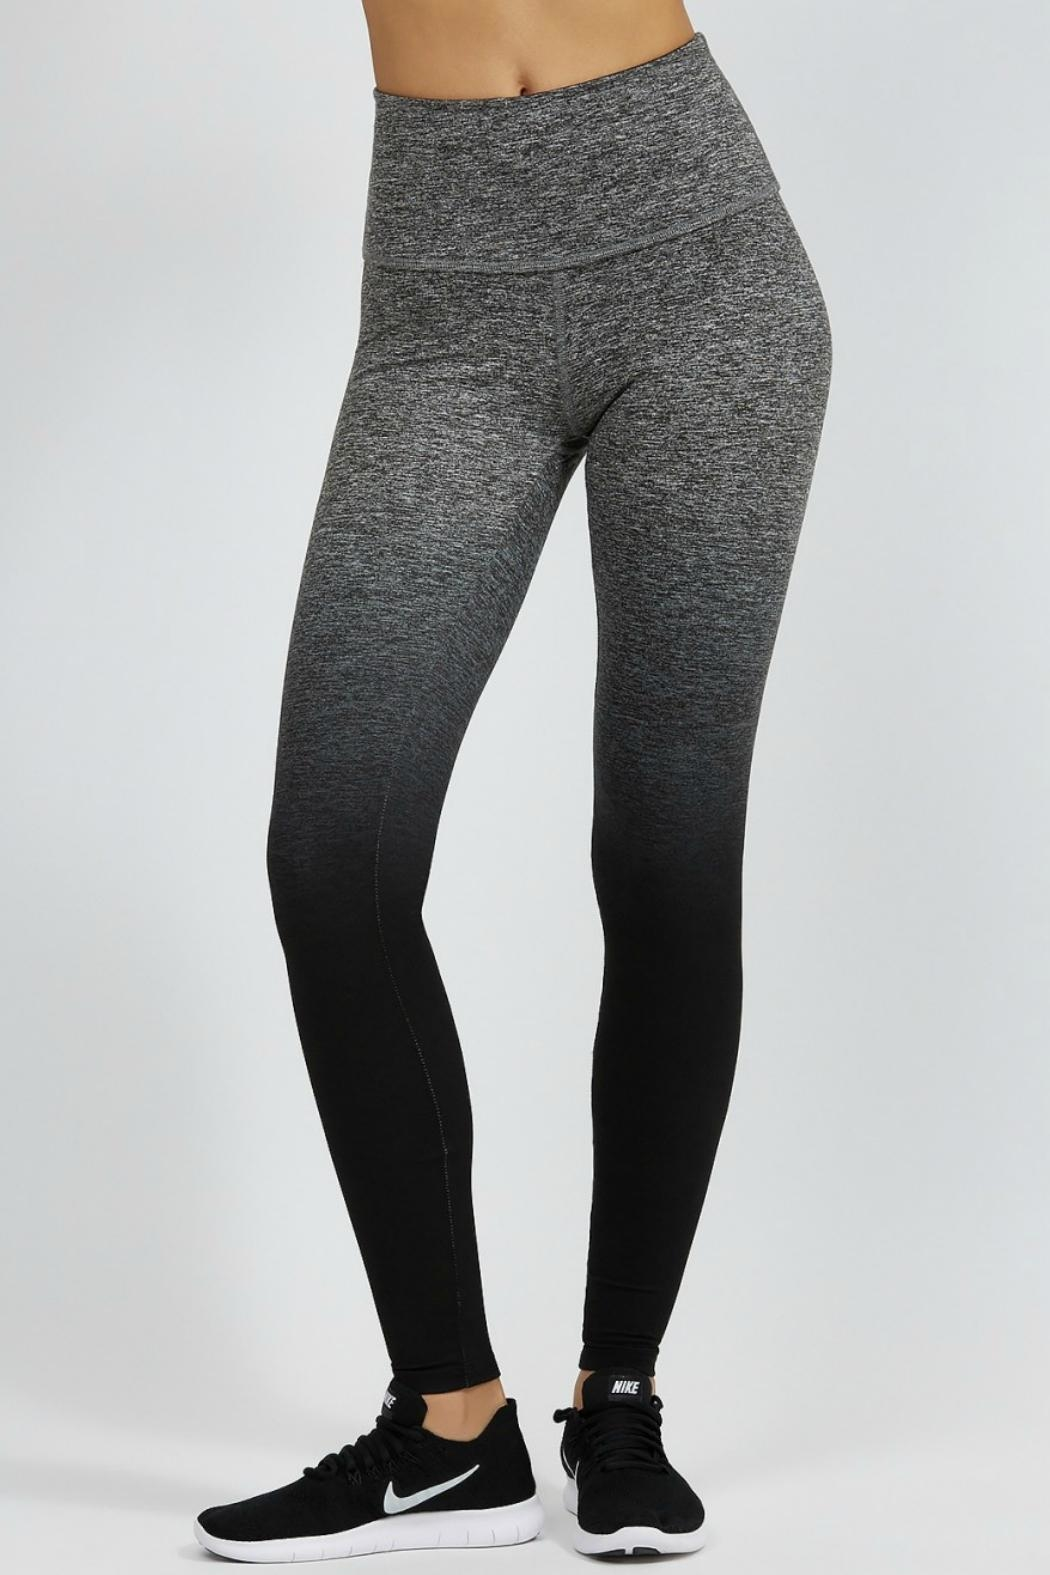 21575cdb56f0d8 Beyond Yoga Ombre Legging from Iowa by Namaste' Athleisure Wear ...